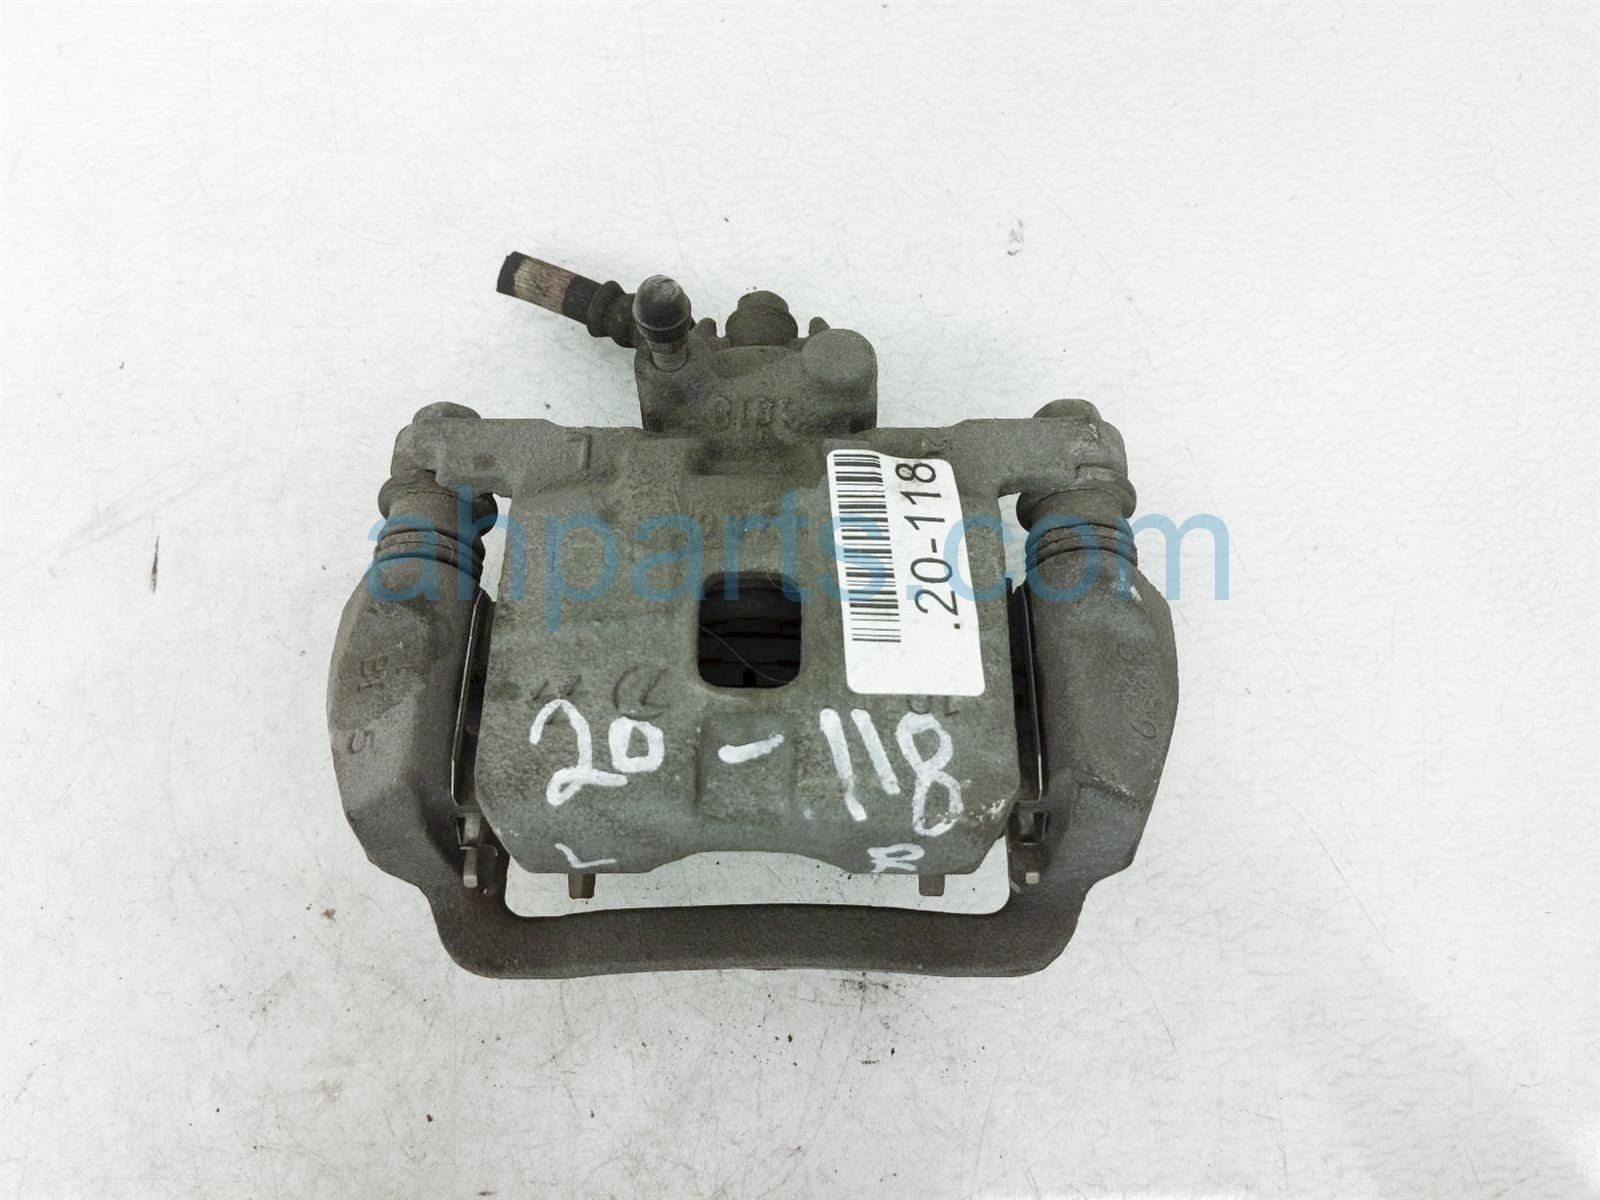 2007 Subaru Impreza Rear Driver Brake Caliper 26692FE031 Replacement